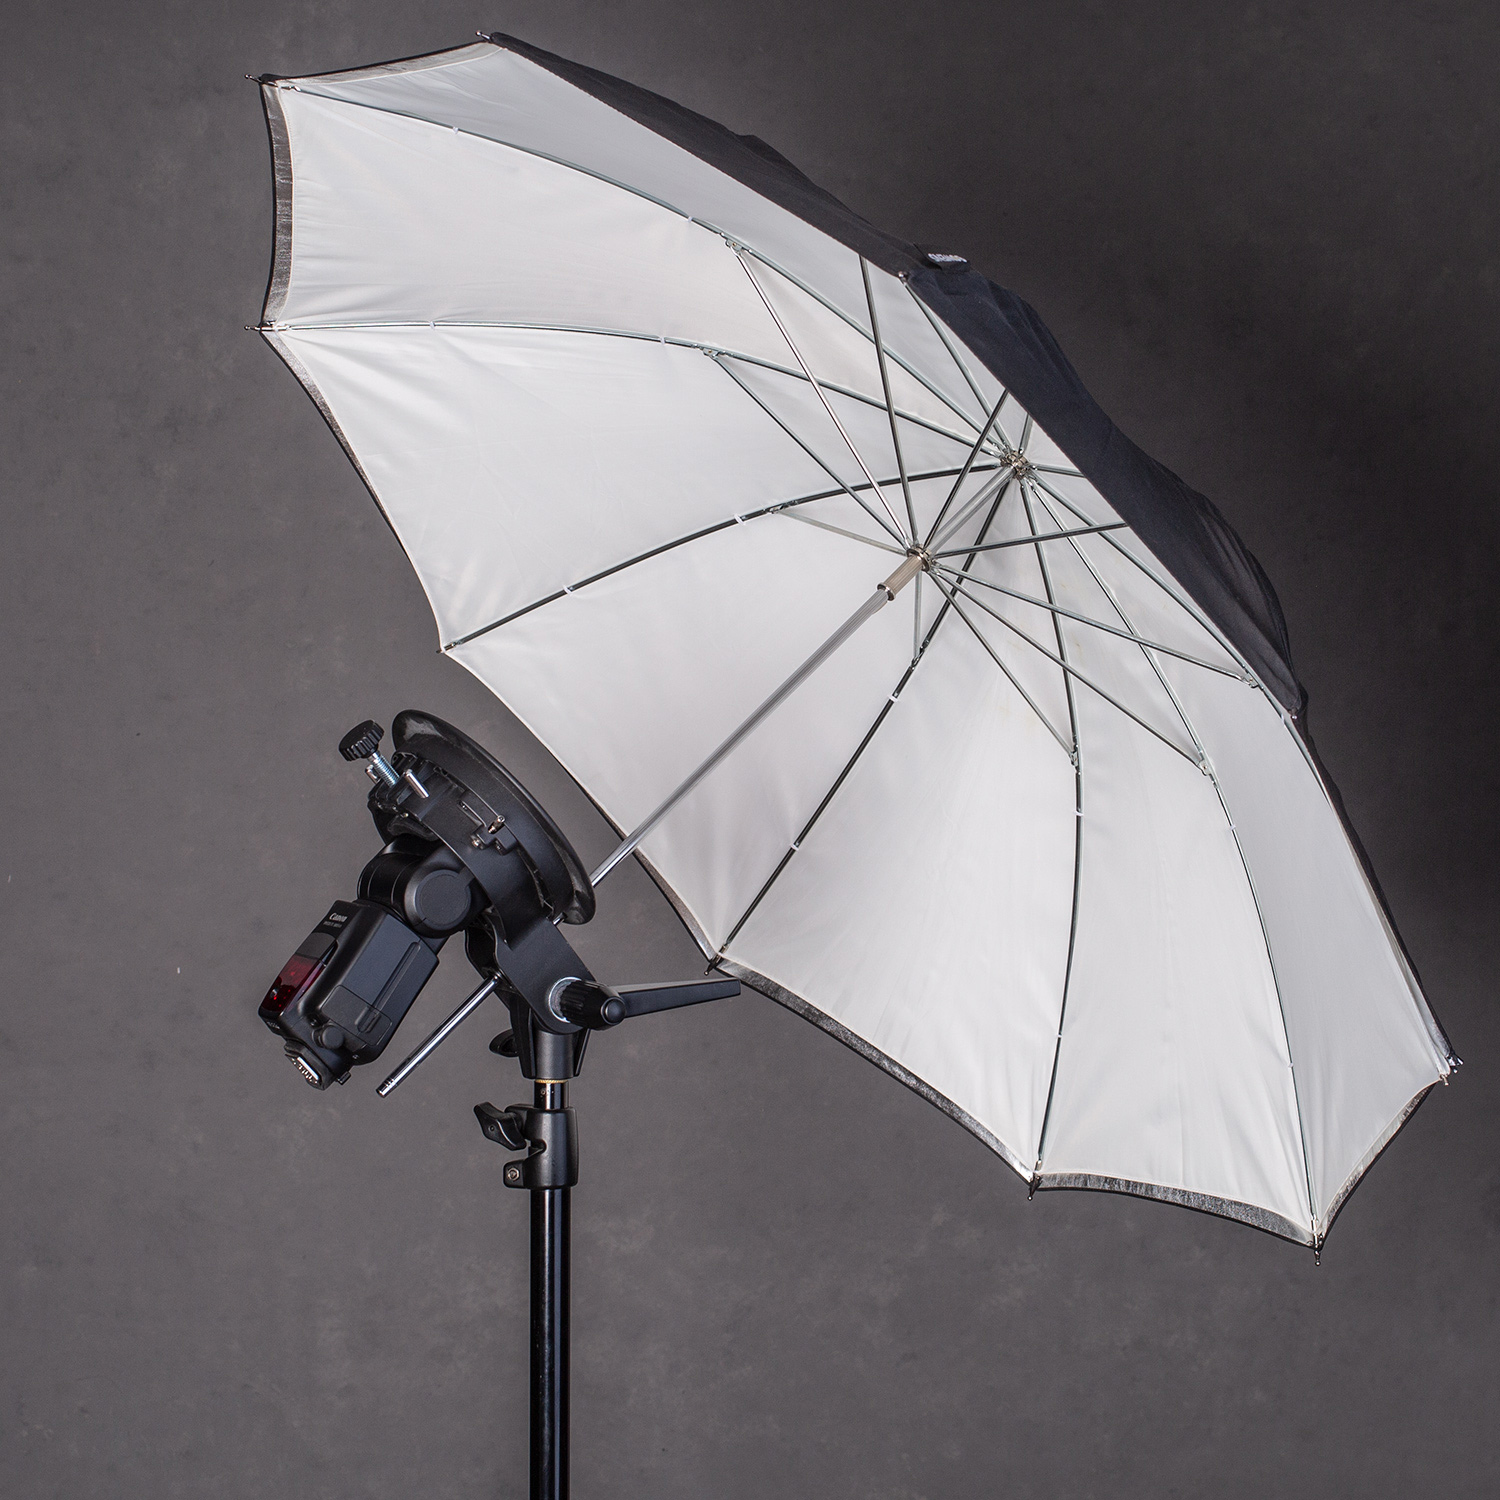 Image: Umbrellas are your most basic modifier. They are good for soft, diffused light, but they are...